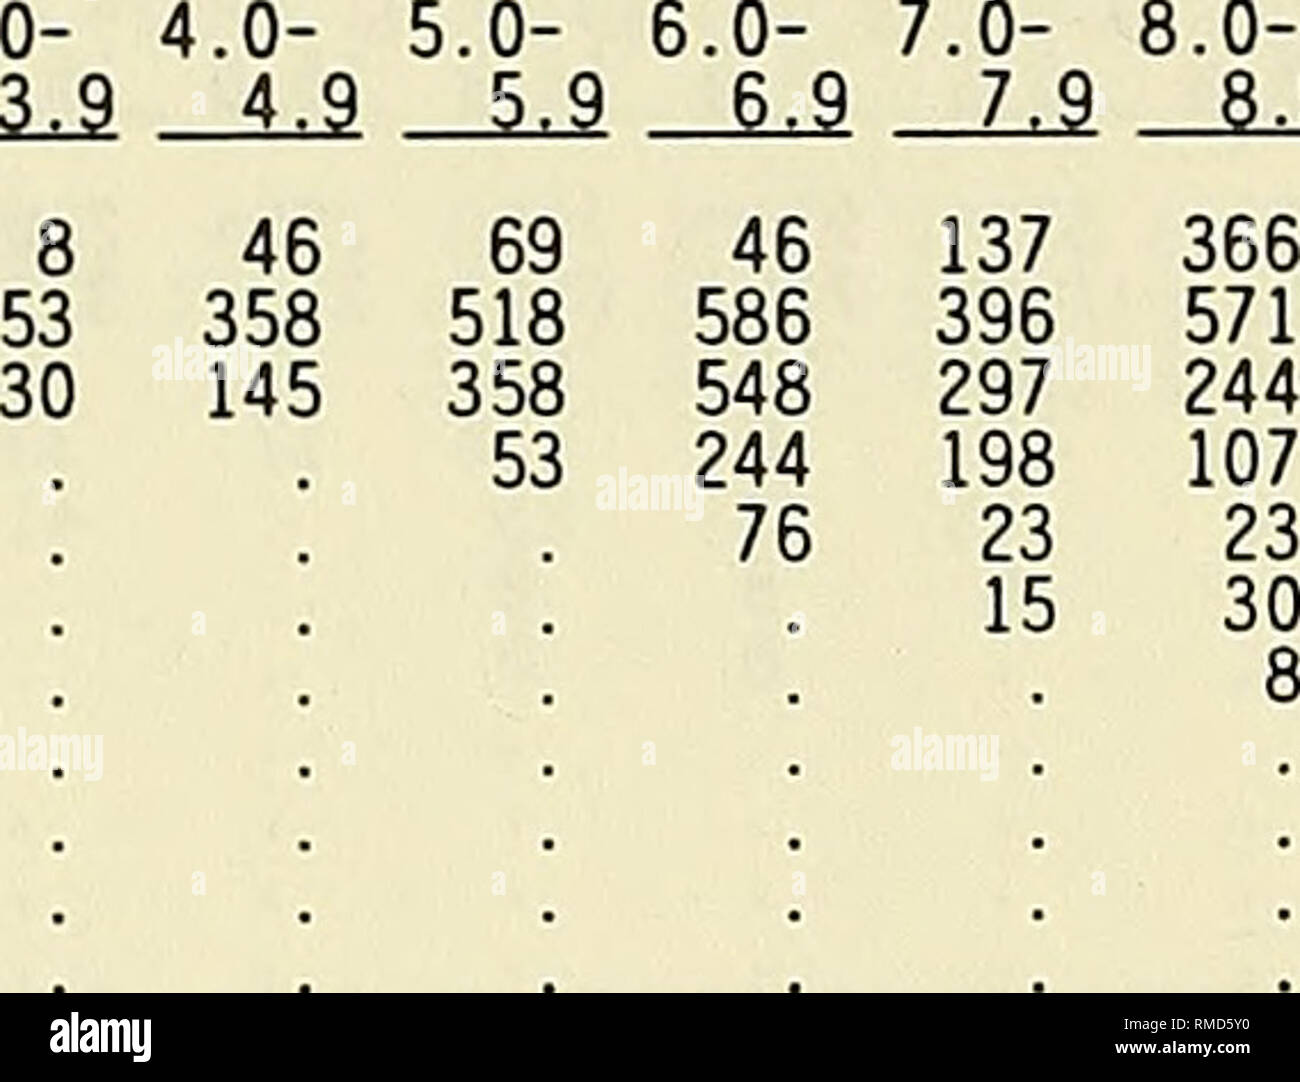 """. Annual data summary for 1991 CERC Field Research Facility. Ocean waves; Marine meteorology; Oceanographic research stations; Oceanography. Table D4 (Concluded) October 1980-1991, Gage 625 Percent Occurrence(XlOO) of Hei ght and Period Height(m) Period(sec) Total 2.0- 3.0- 4.0- 5.0- 6.0- 7.0- 8.0- 9.0- 10.0- 12.0- 14.0- 16.0- 2.9 3.9 4.9 5.9 6.9 7.9 8.9 9.9 11.9 13.9 15.9 7 21 50 14 114 263 227 277 107 234 Lonaer 36 0.00 - 0.49 1350 0.50 - 0.99 78 206 341 384 298 547 724 1058 199 320 36 4191 1.00 - 1.49 """" 128 405 348 192 149 313 440 99 213 14 2308 1.50 - 1.99 28 99 249 71 78 71 234 114 1 - Stock Image"""